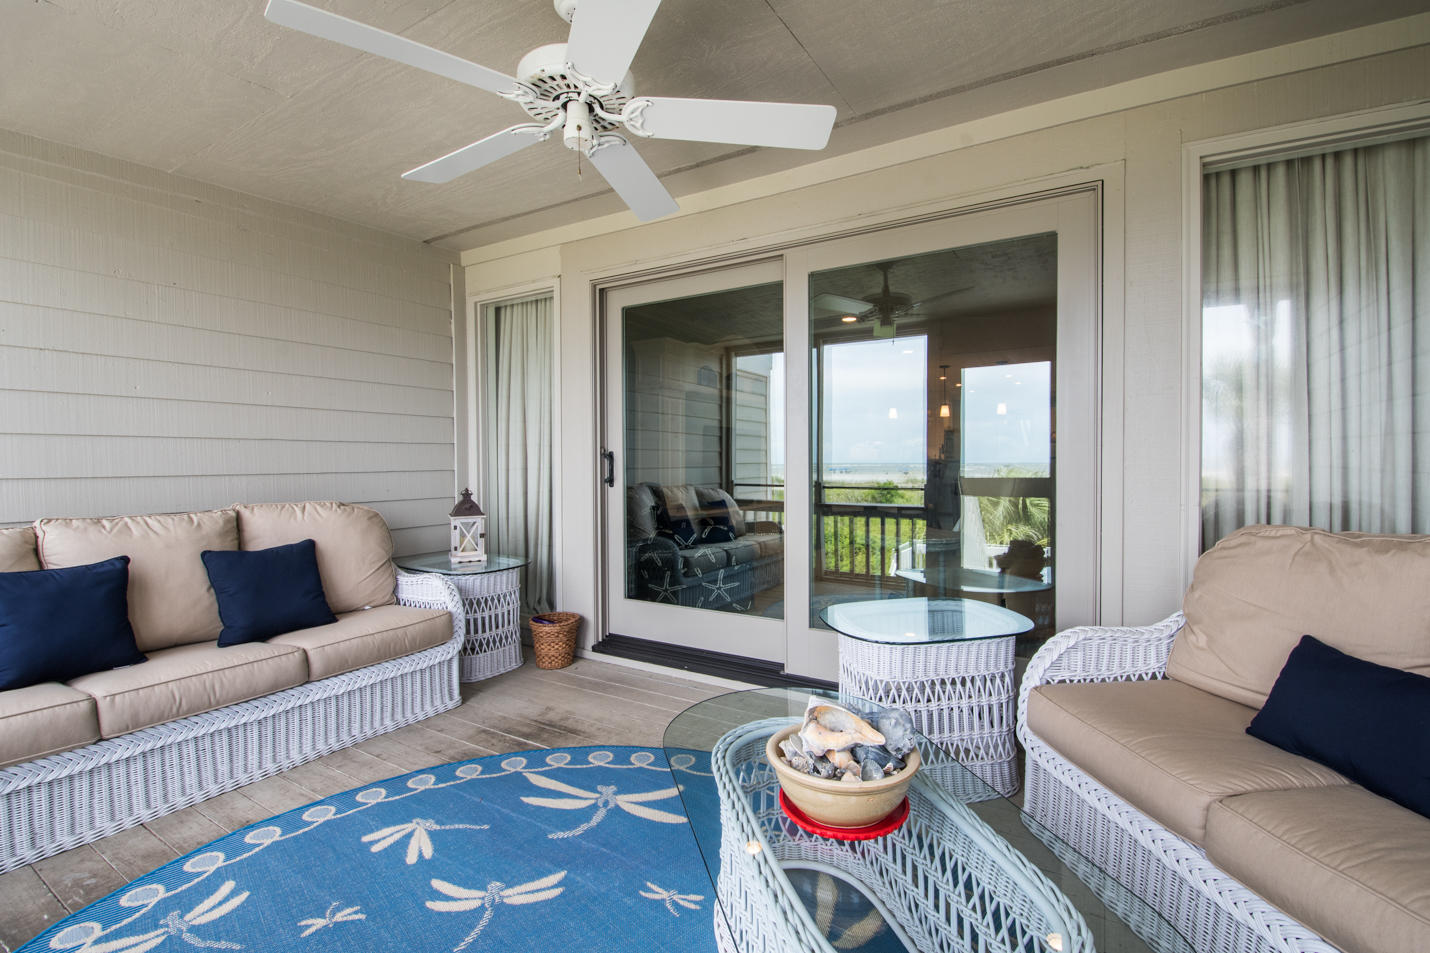 Beach Club Villas Homes For Sale - 66 Beach Club Villas, Isle of Palms, SC - 35